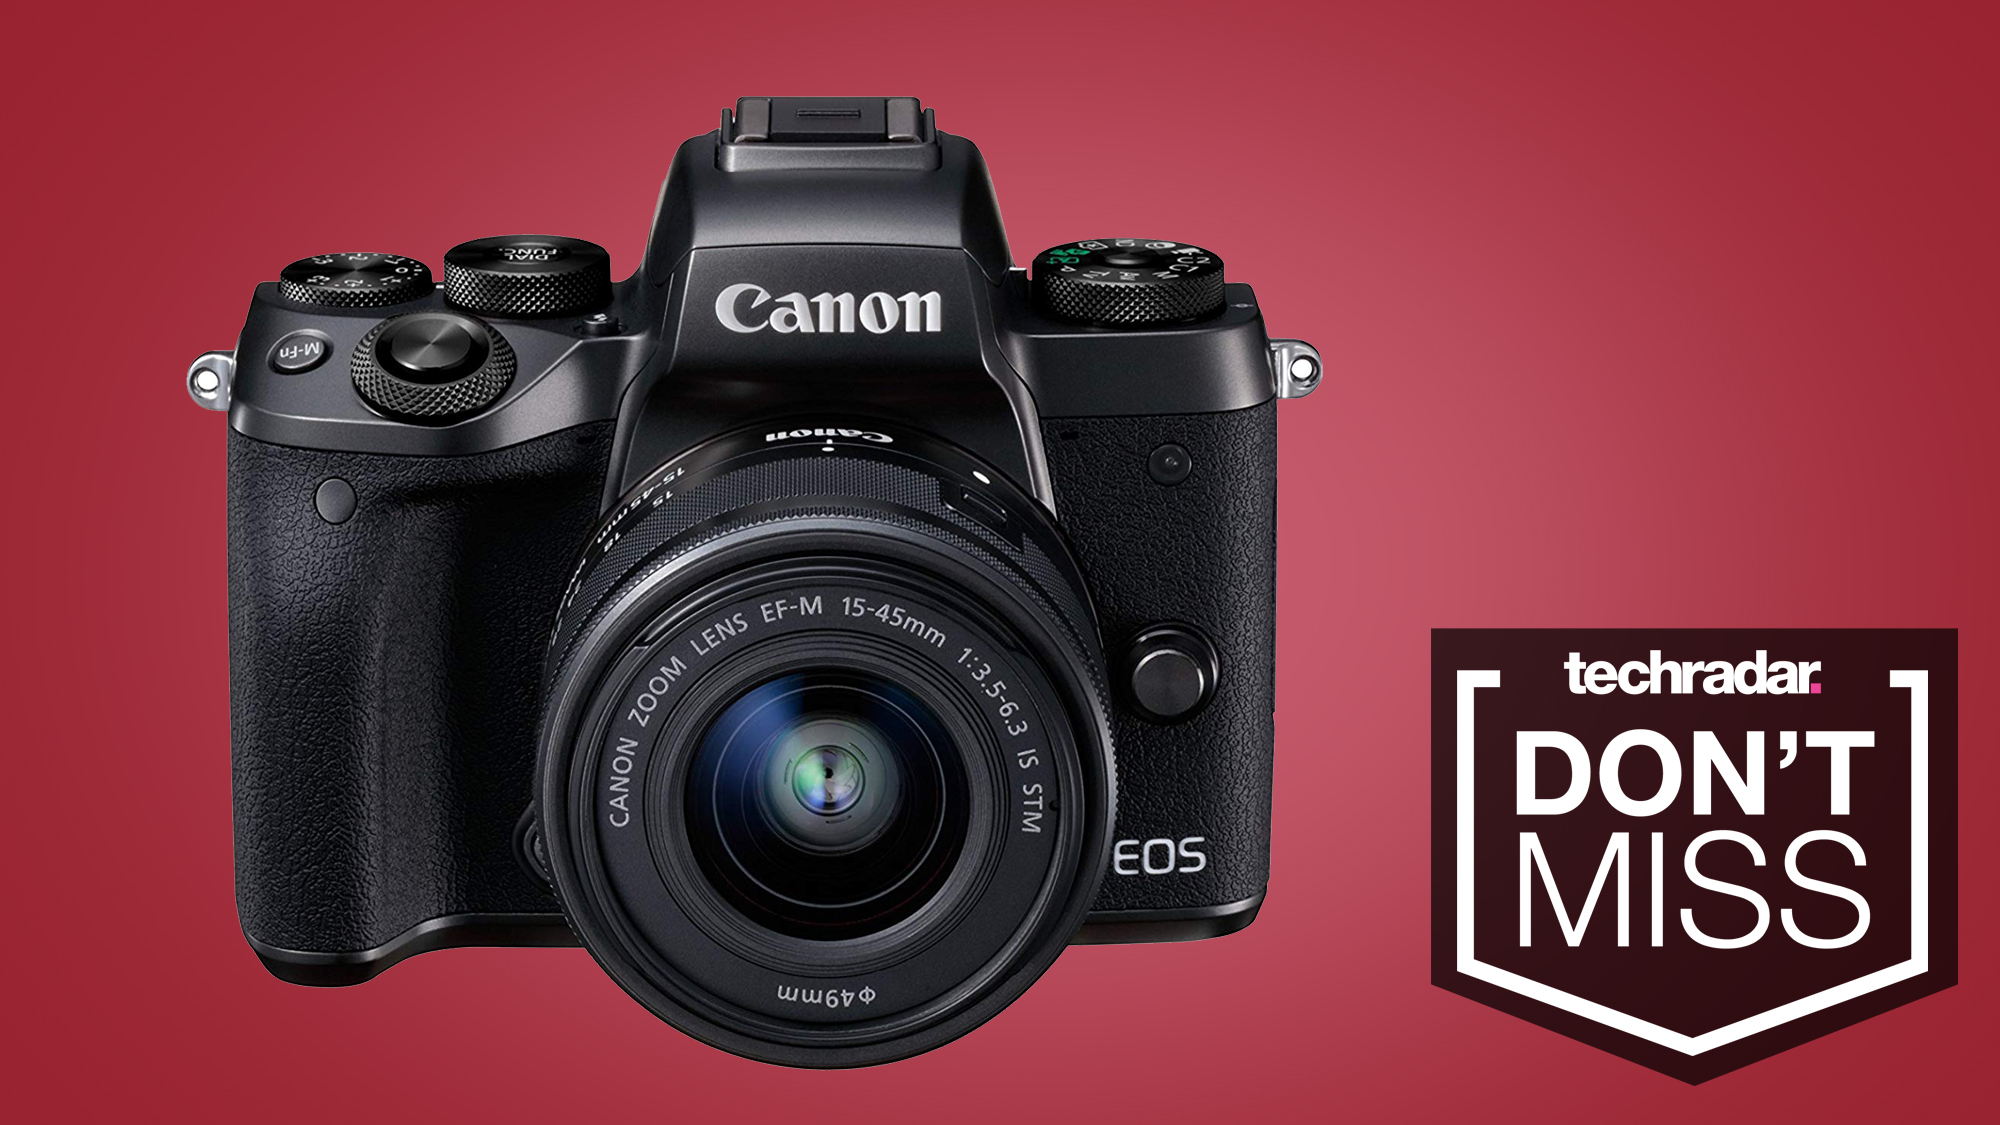 Canon EOS M5 hits lowest ever price in this 40% off deal